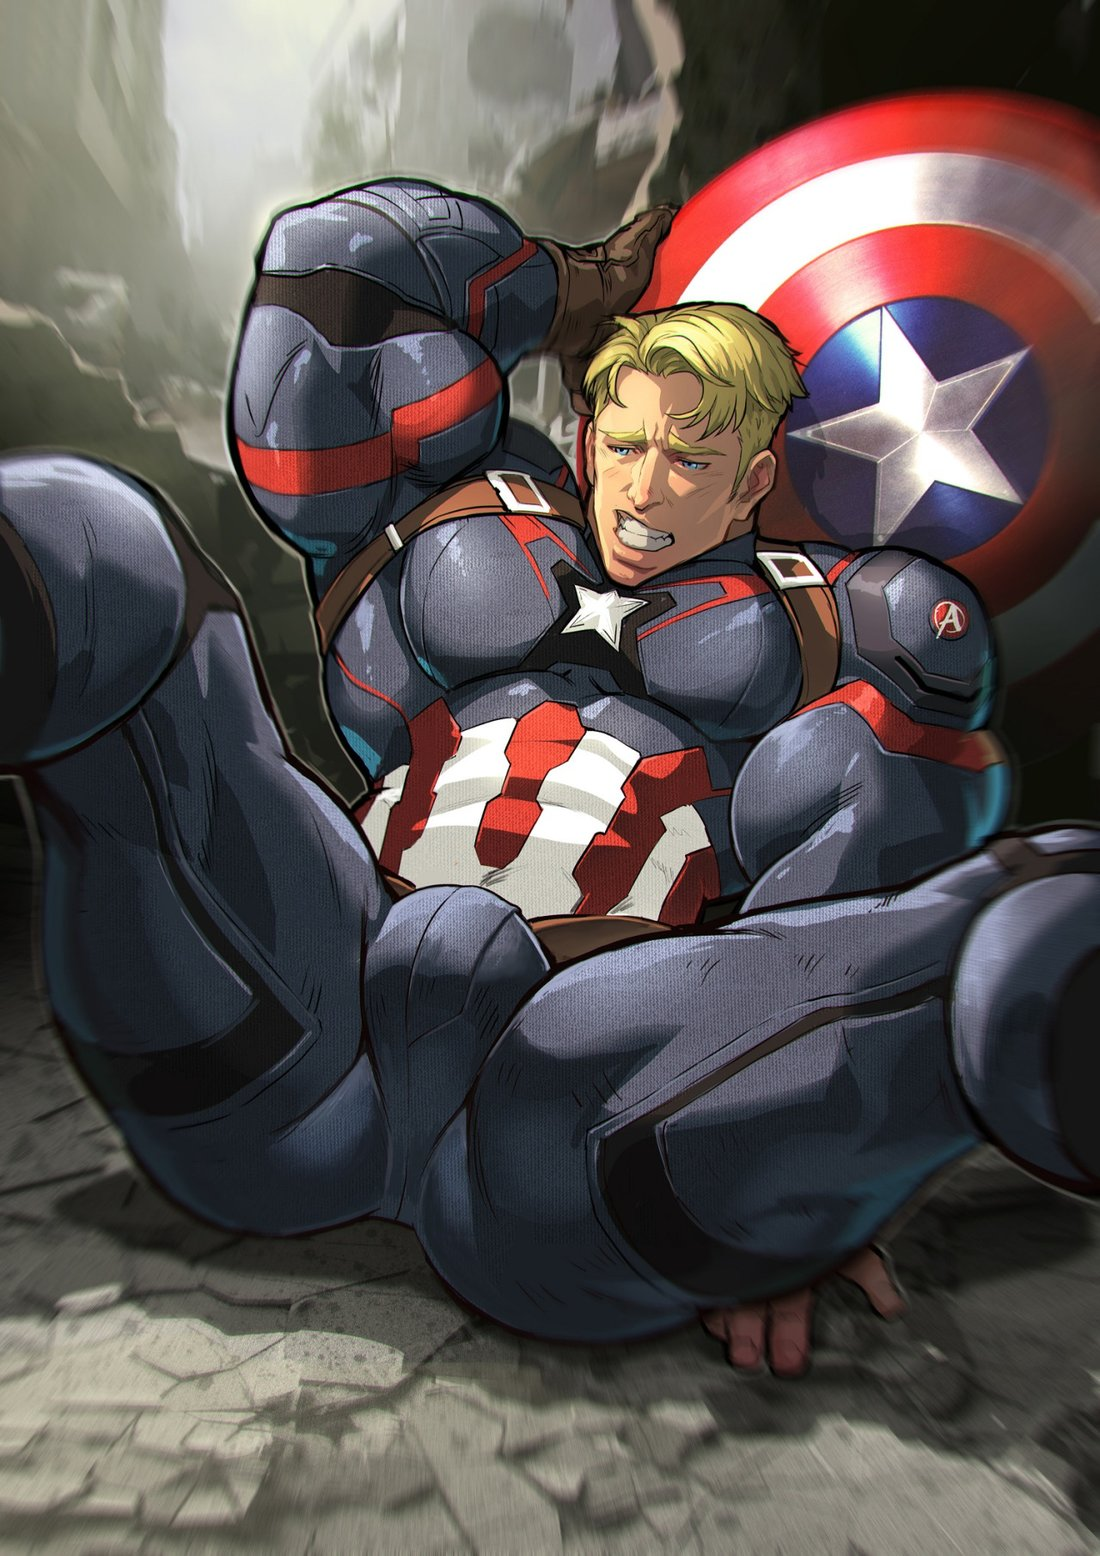 Captain america has america's best ass, according to endgame